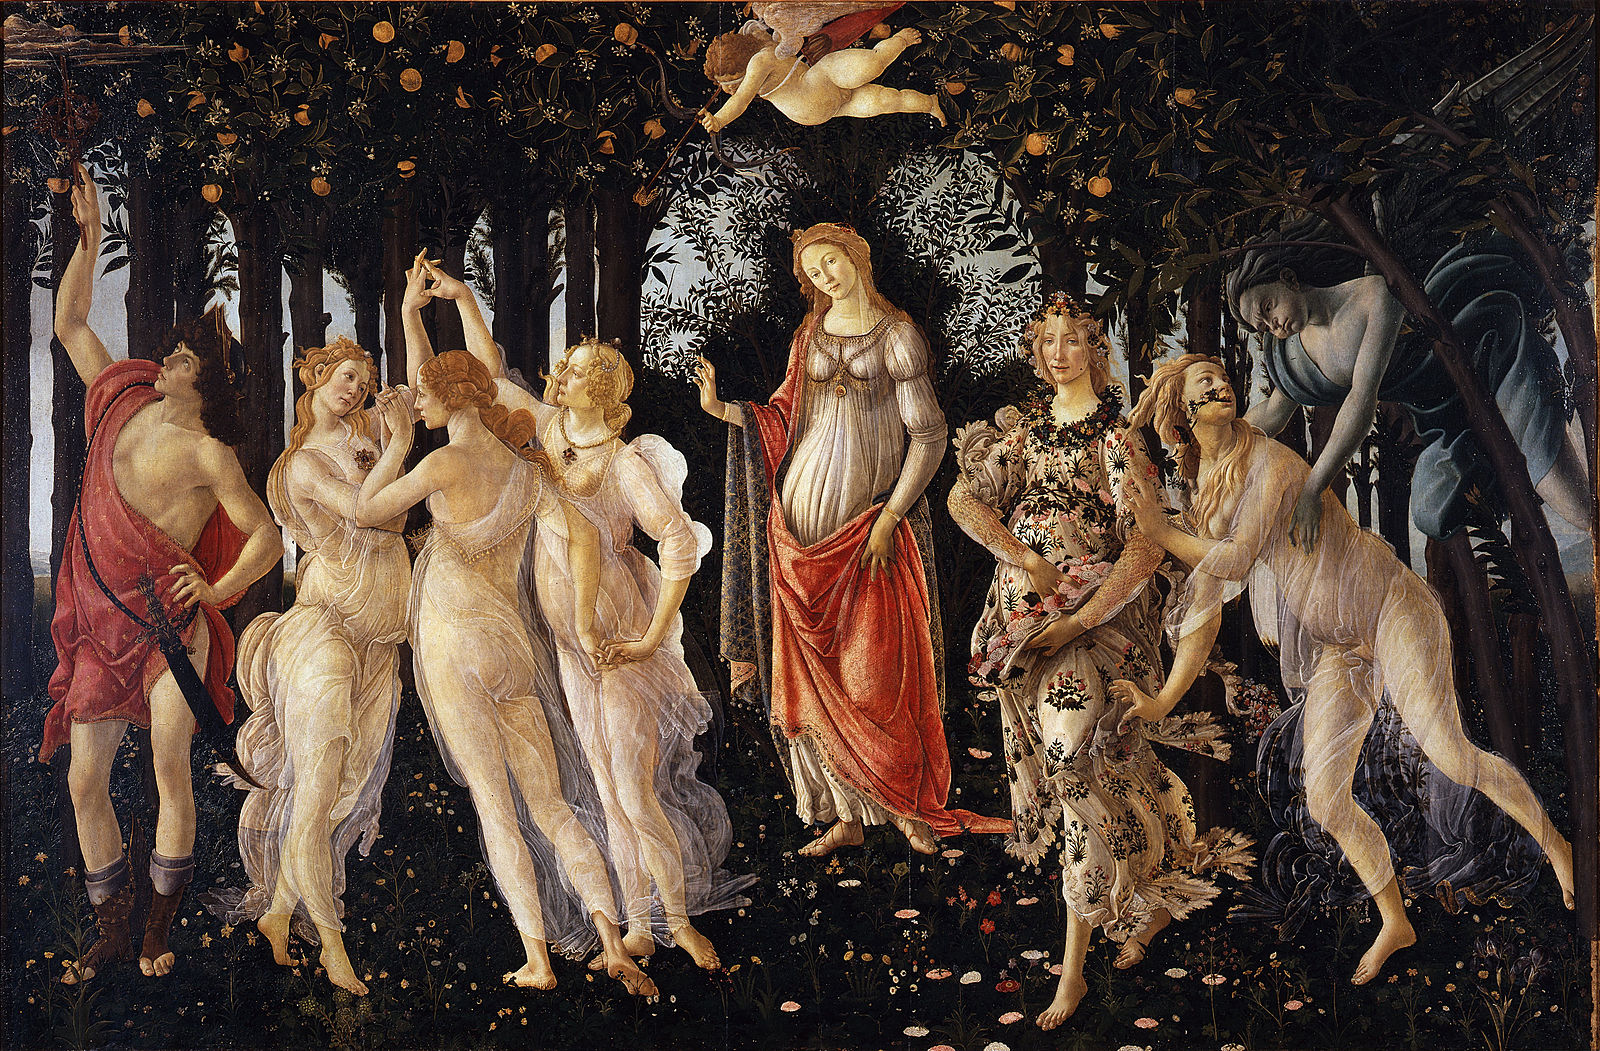 Primavera by Sandro Botticelli (1482)